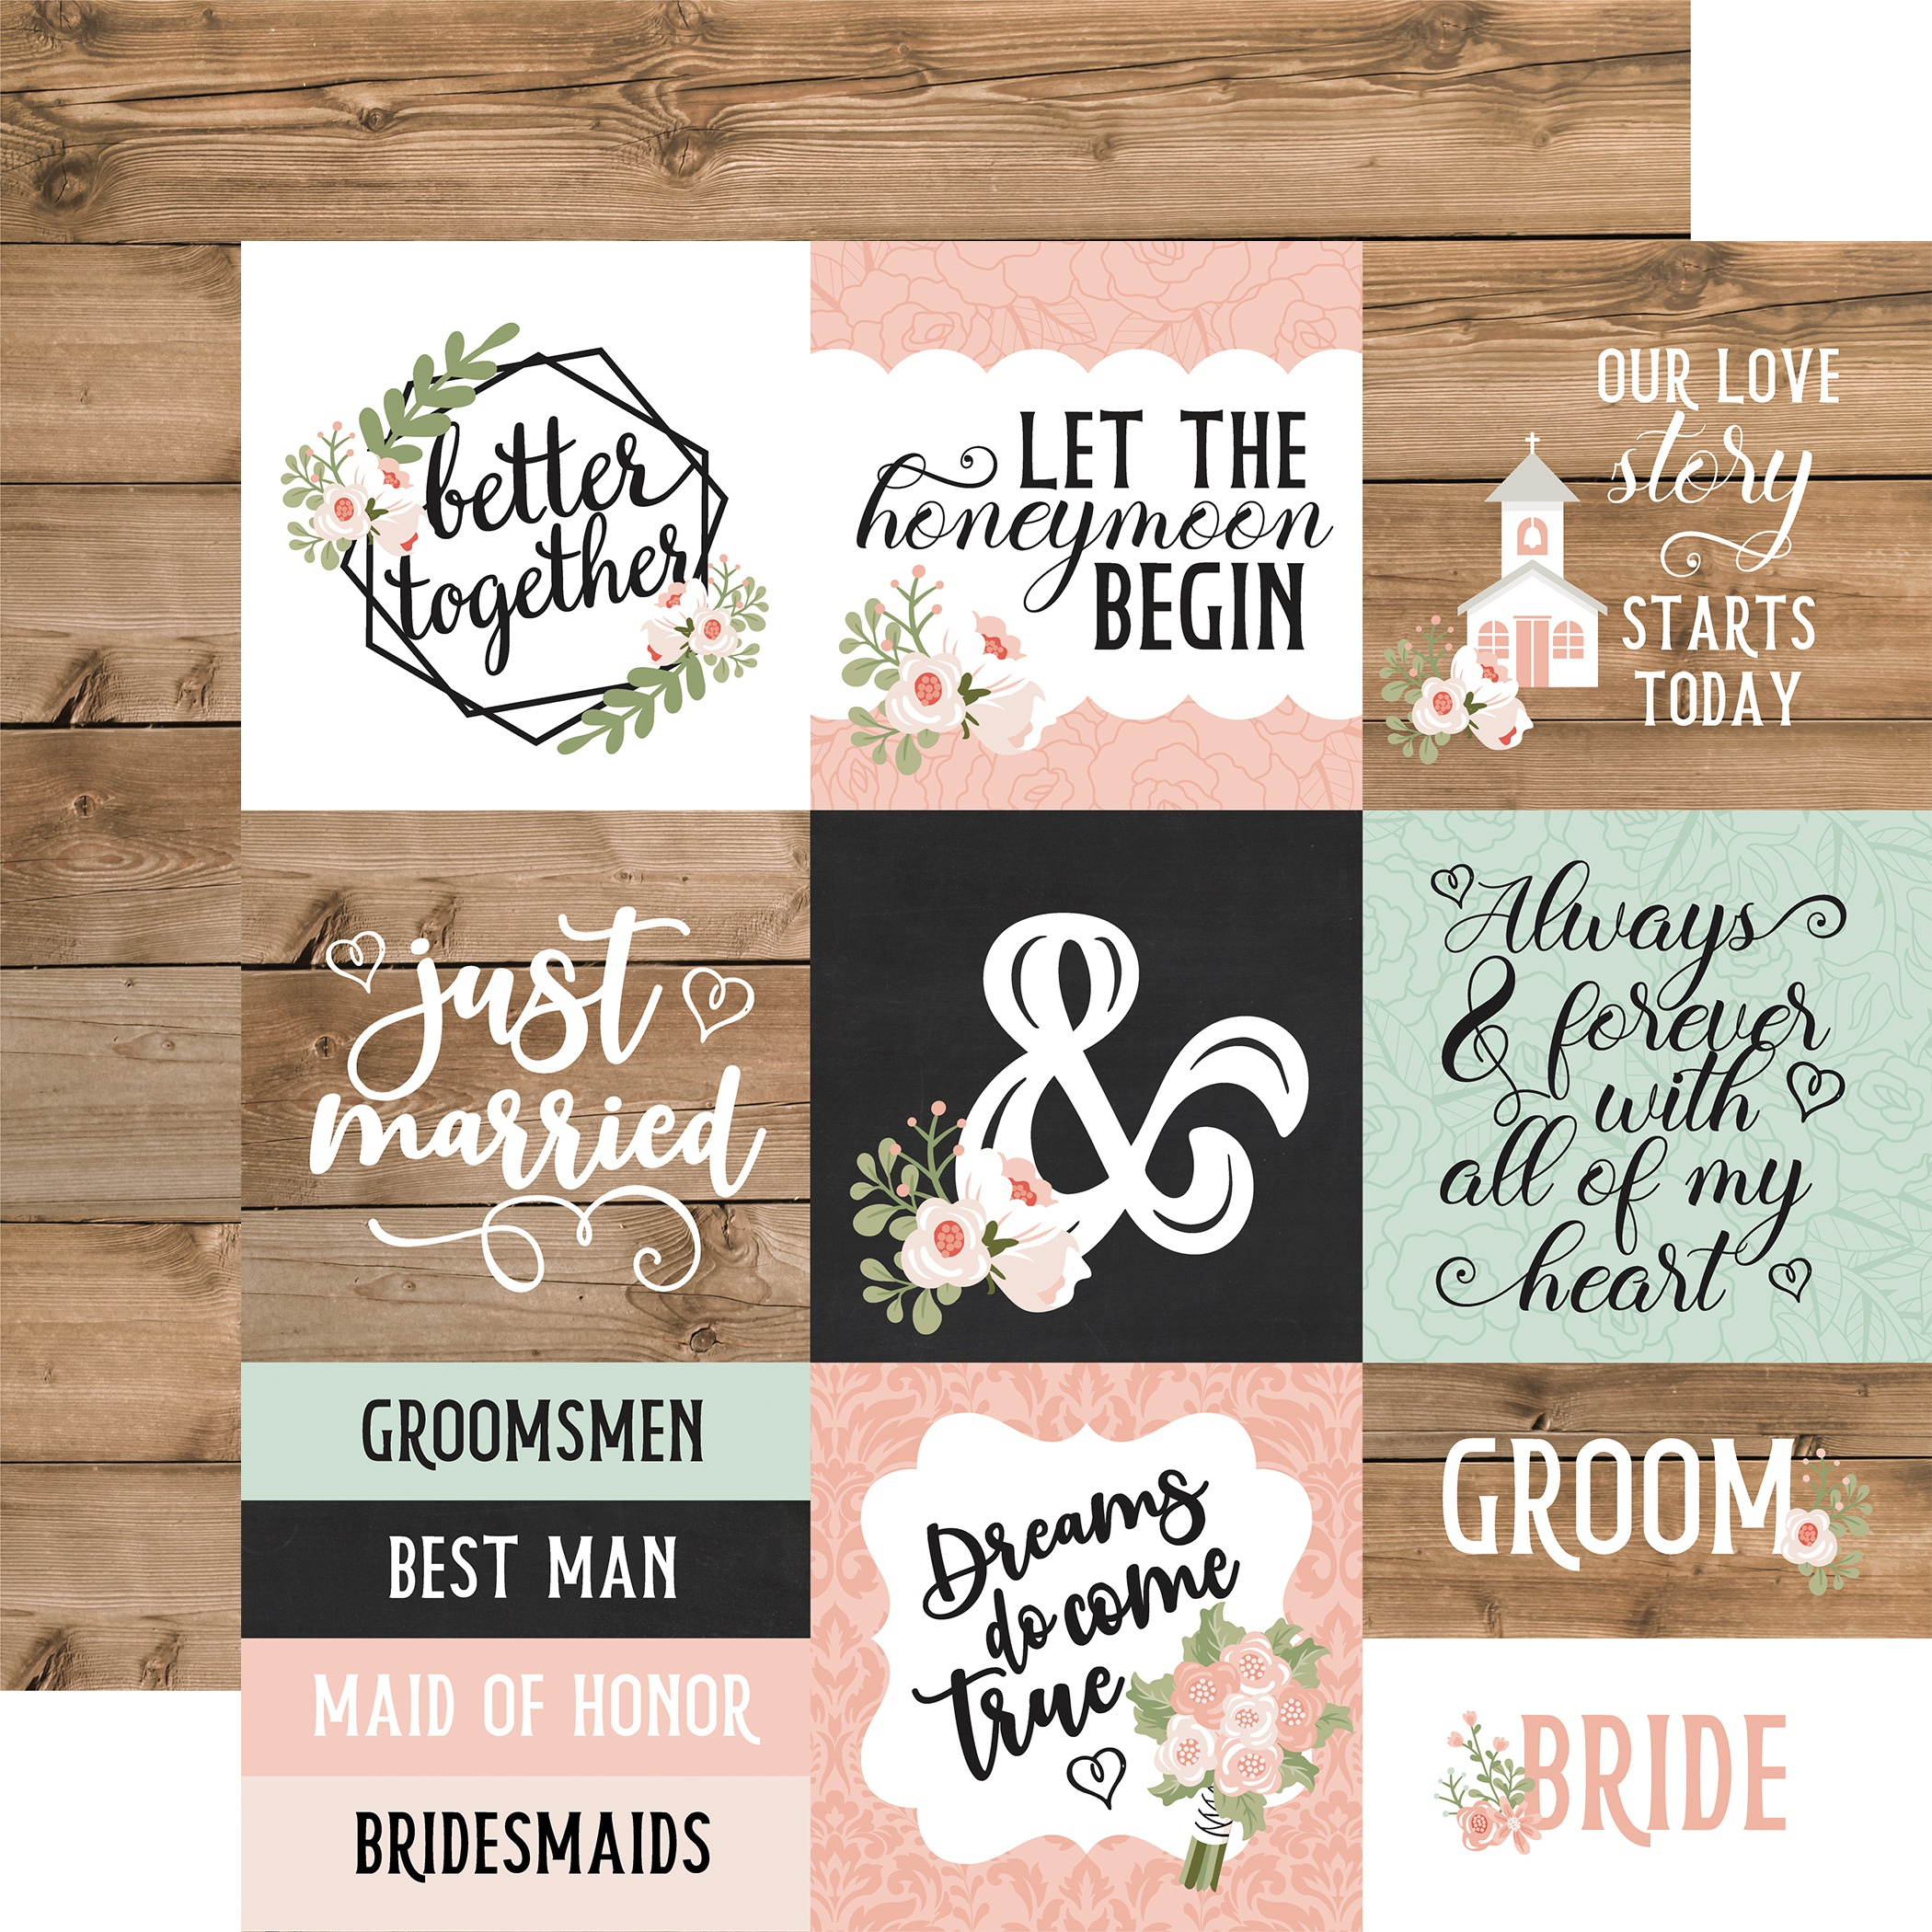 Our Wedding- 12X12 Cardstock